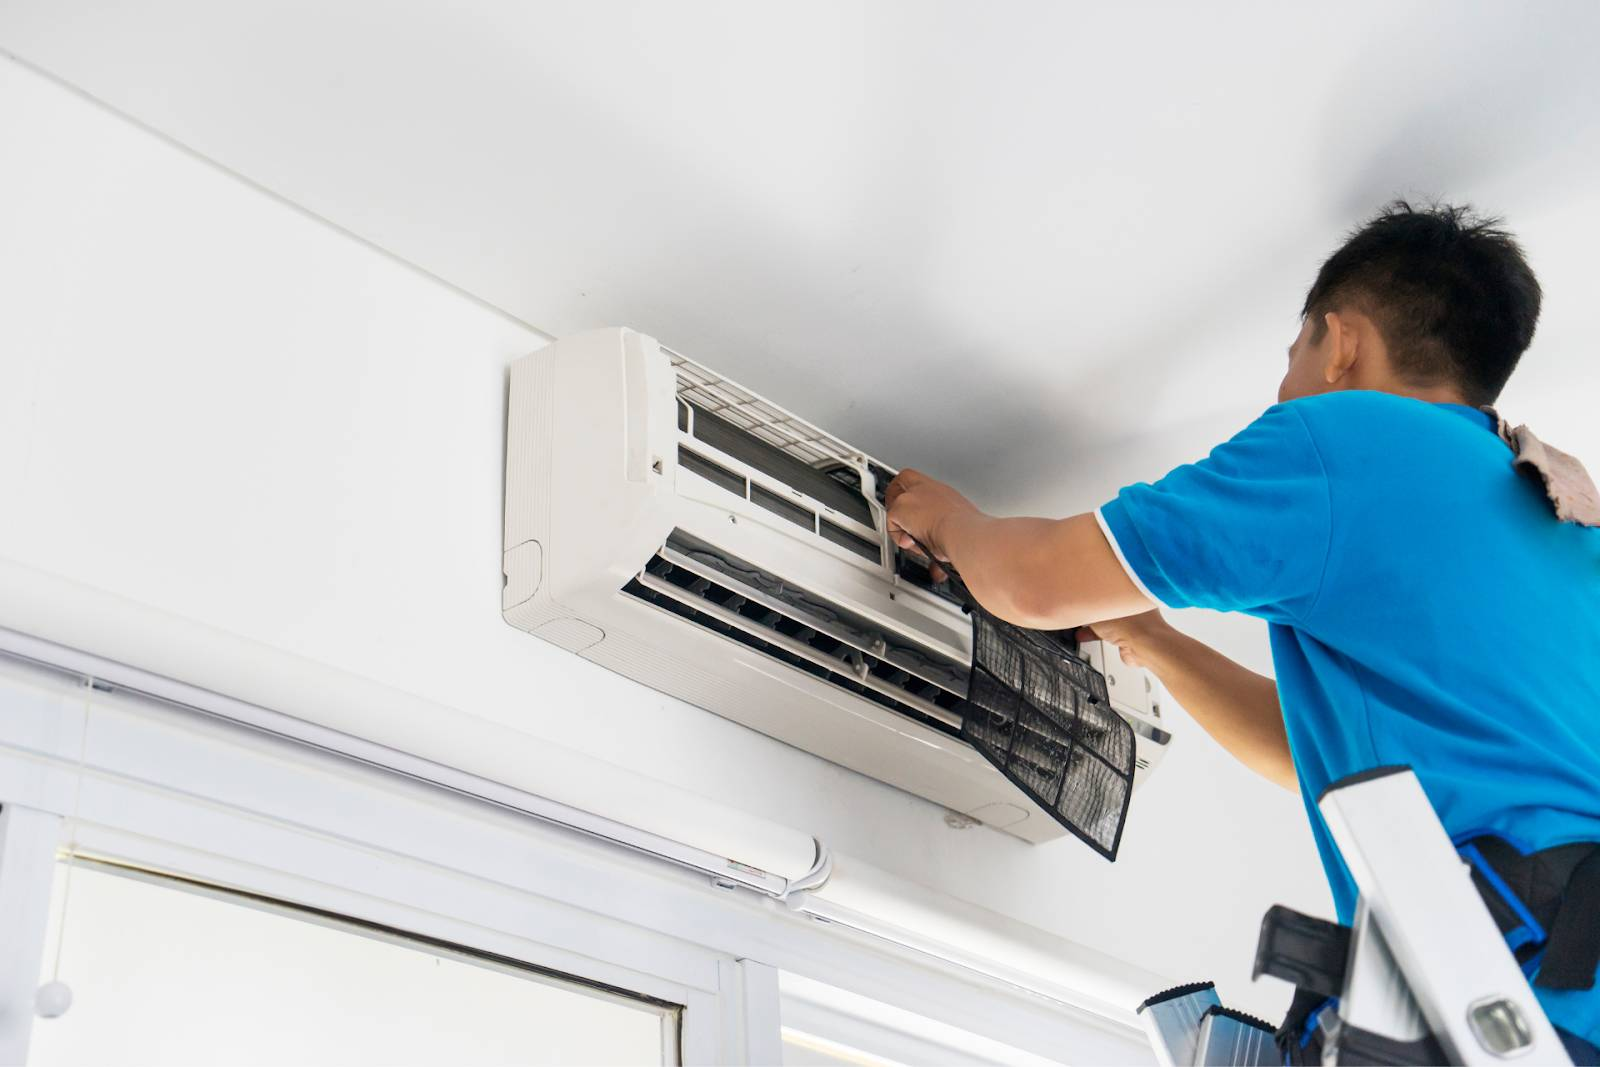 Getting Ready for the Summer: Proper Steps for Checking Your A.C. Unit After the Winter